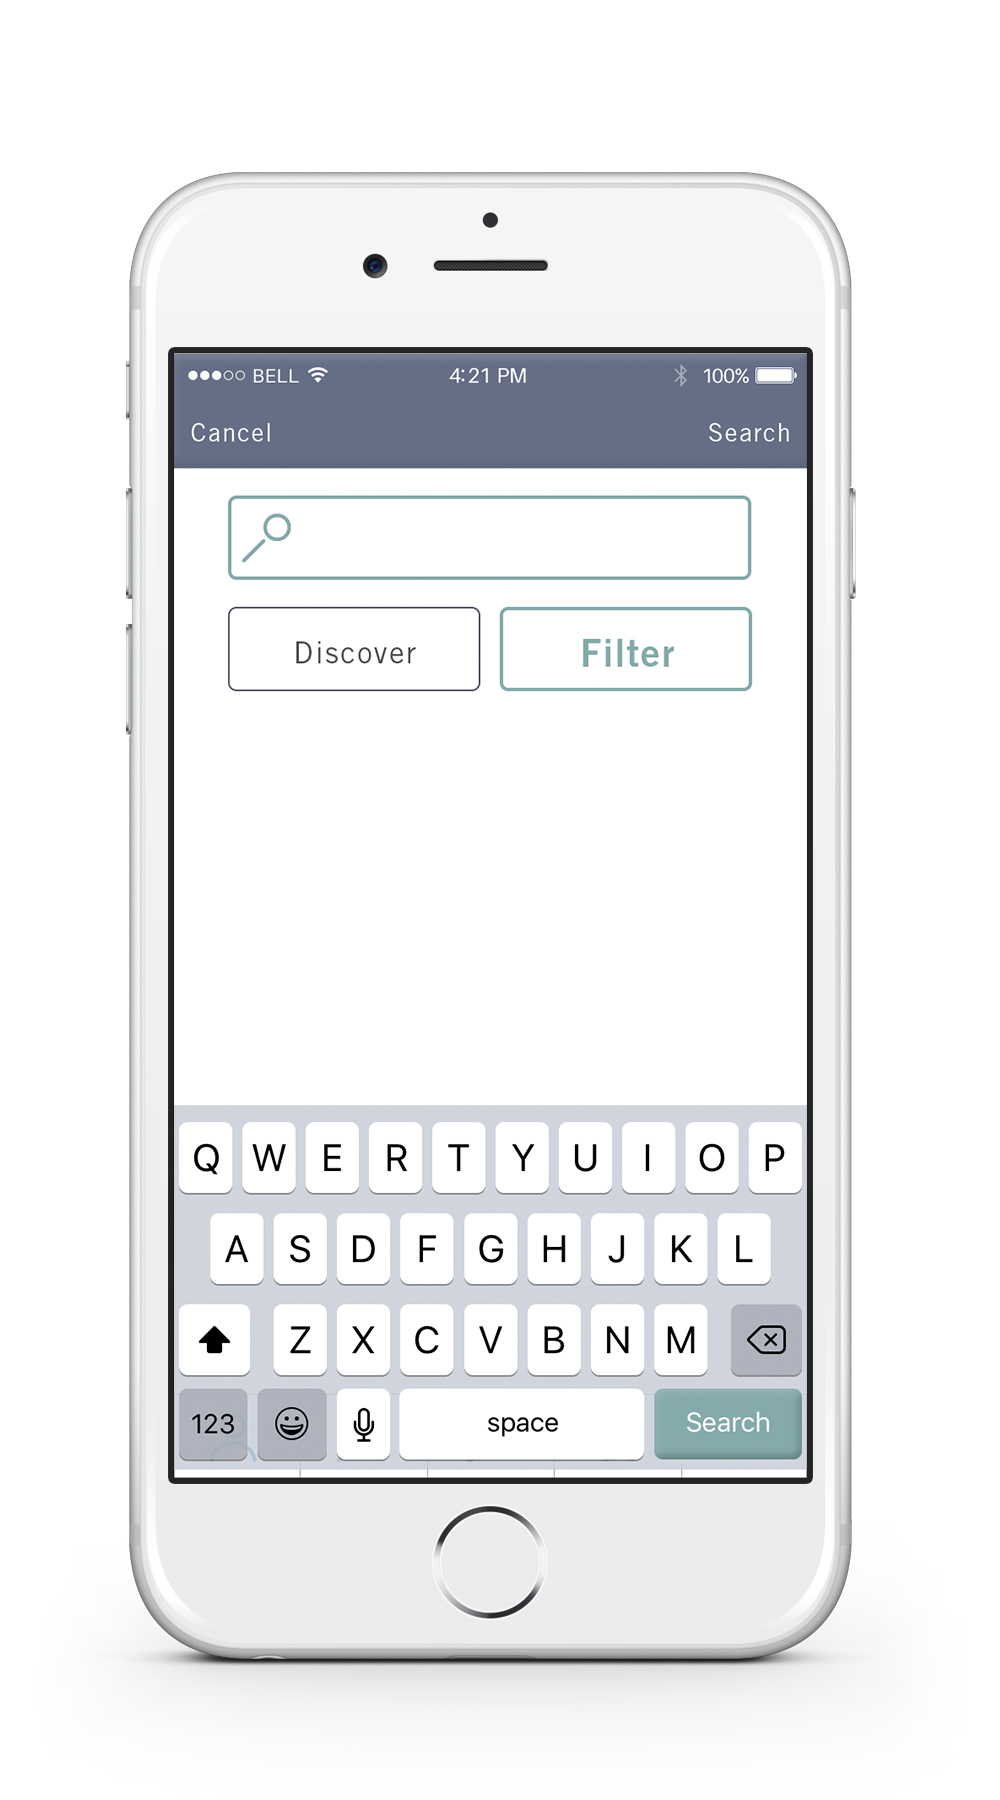 Search    —   The search tab is where the user can type in a specific name for a location, discover a random location or filter his/her search.